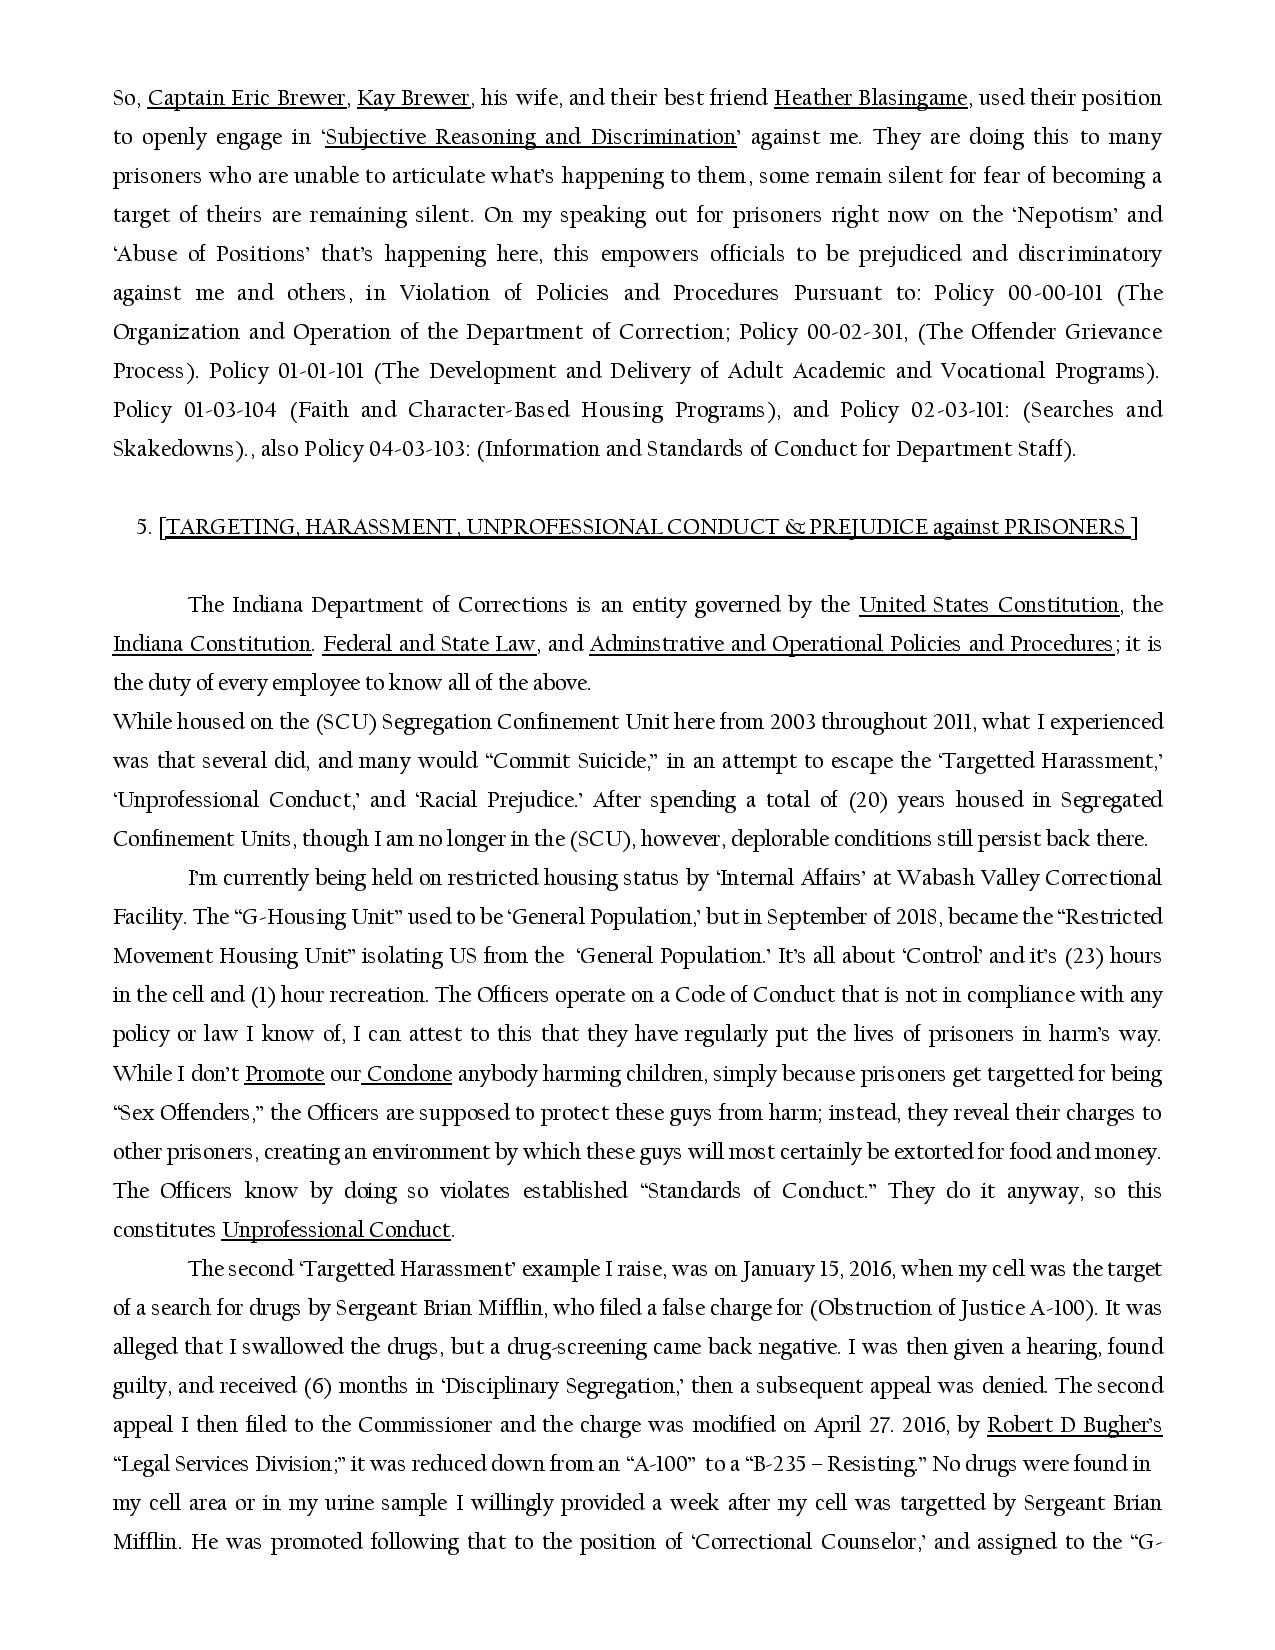 A Political Press Release-page-007.jpg